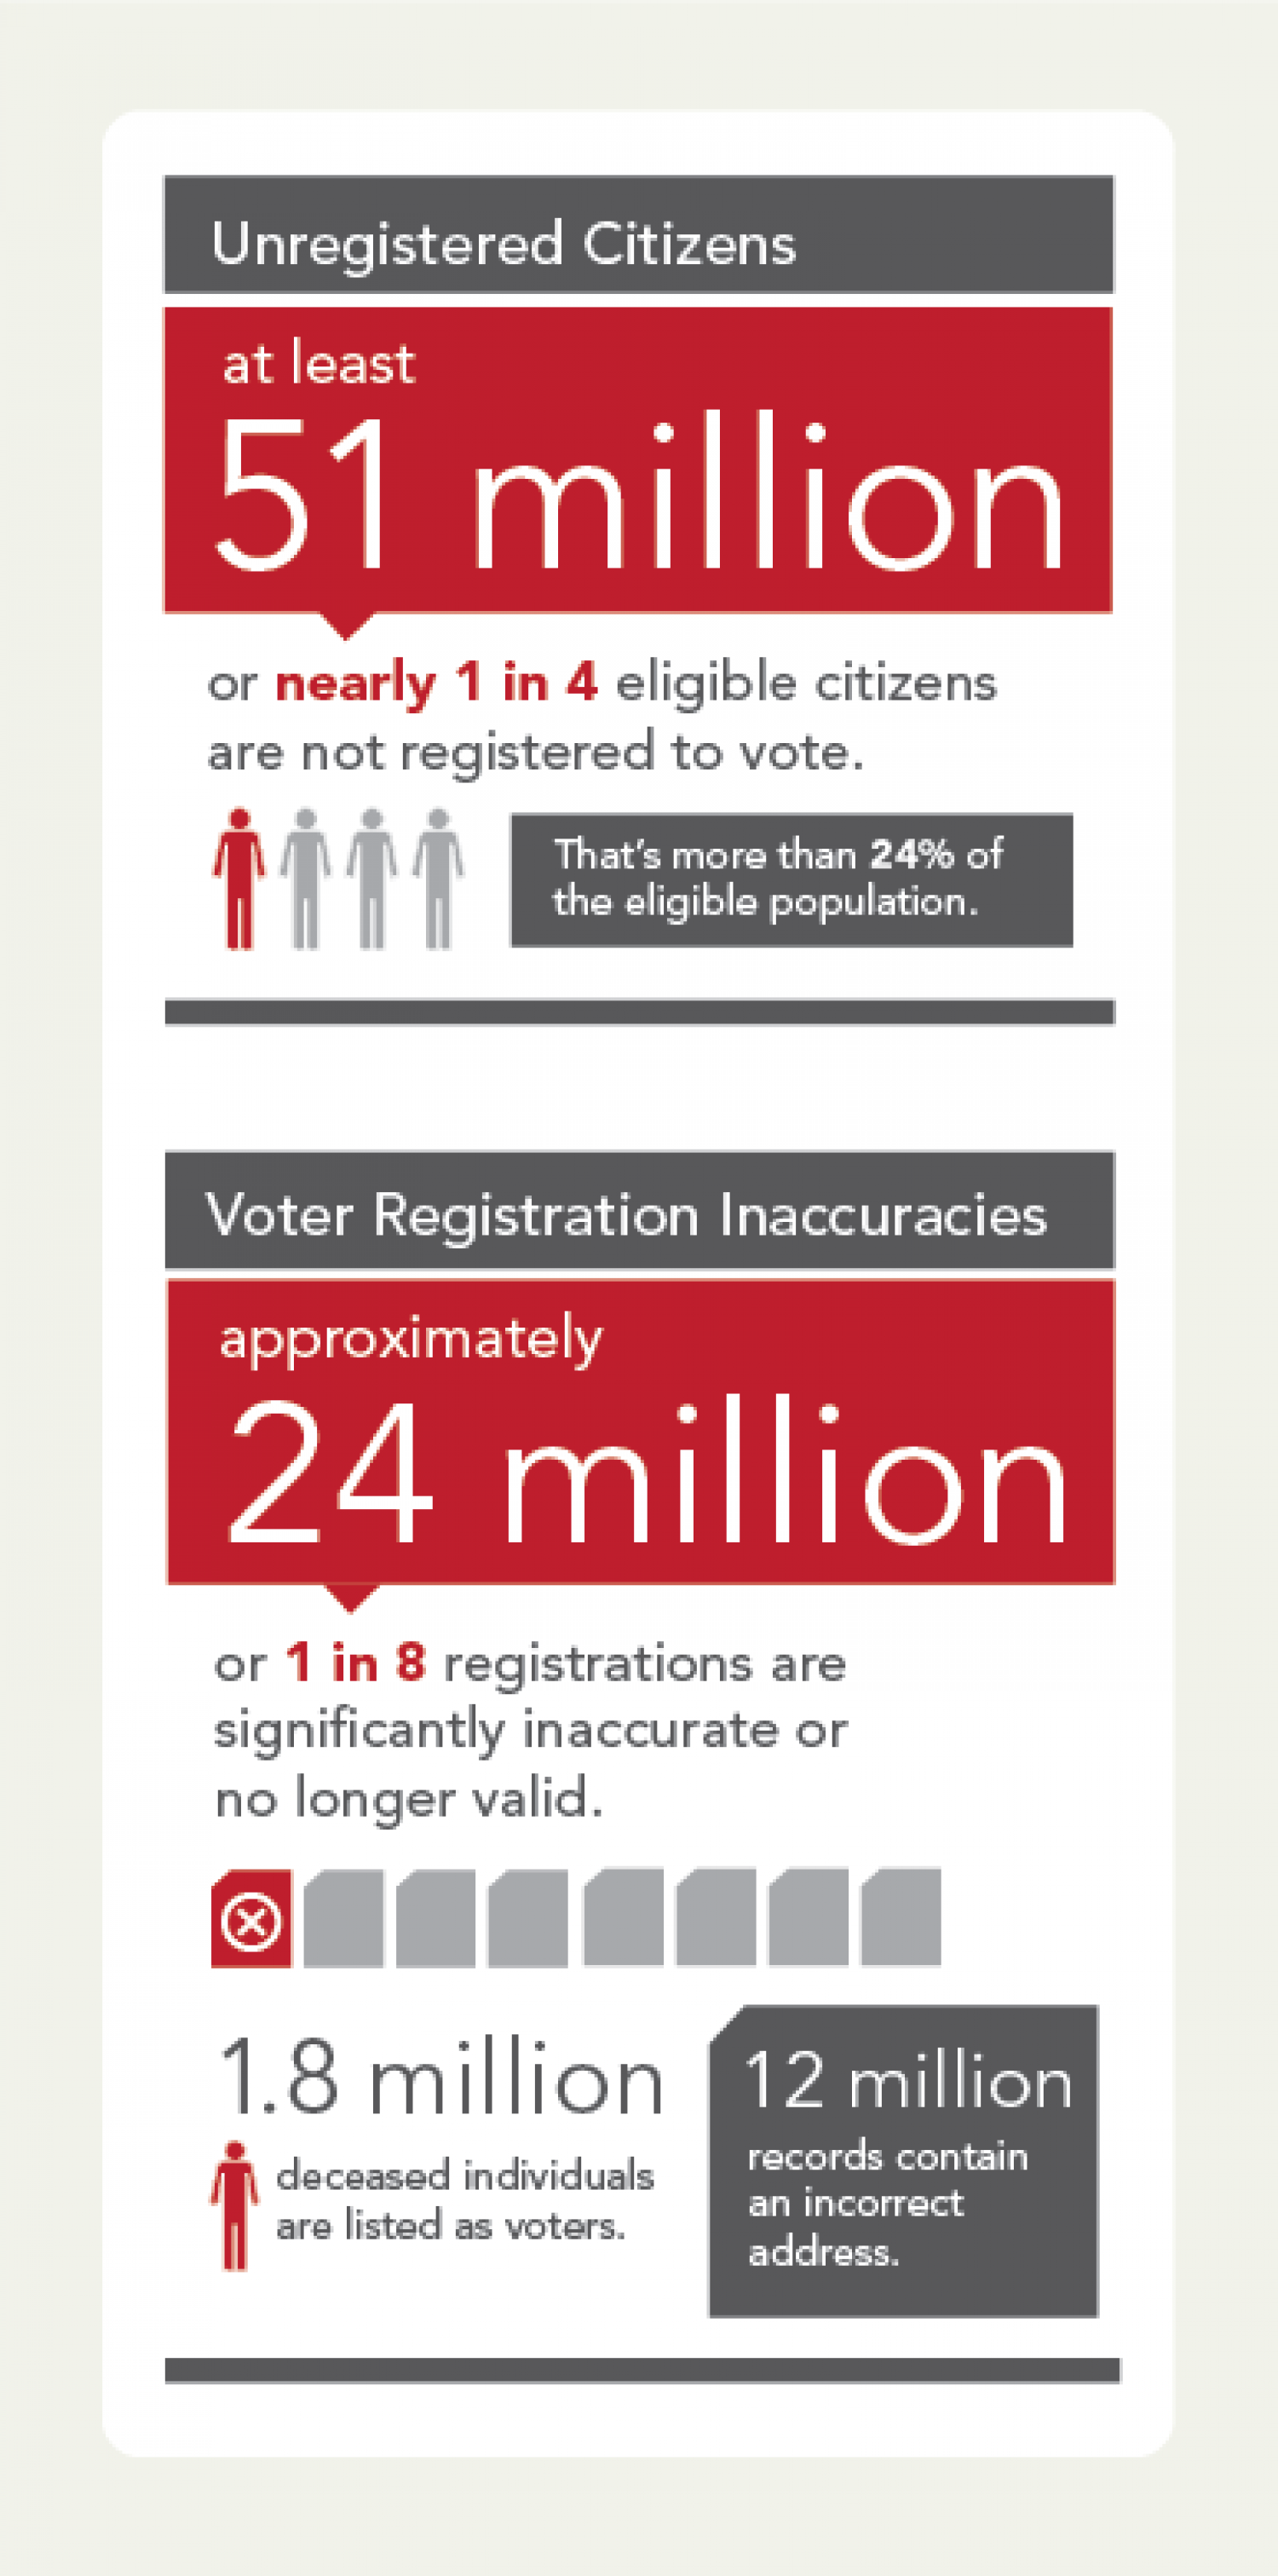 Voter Registration Inaccuracies Infographic